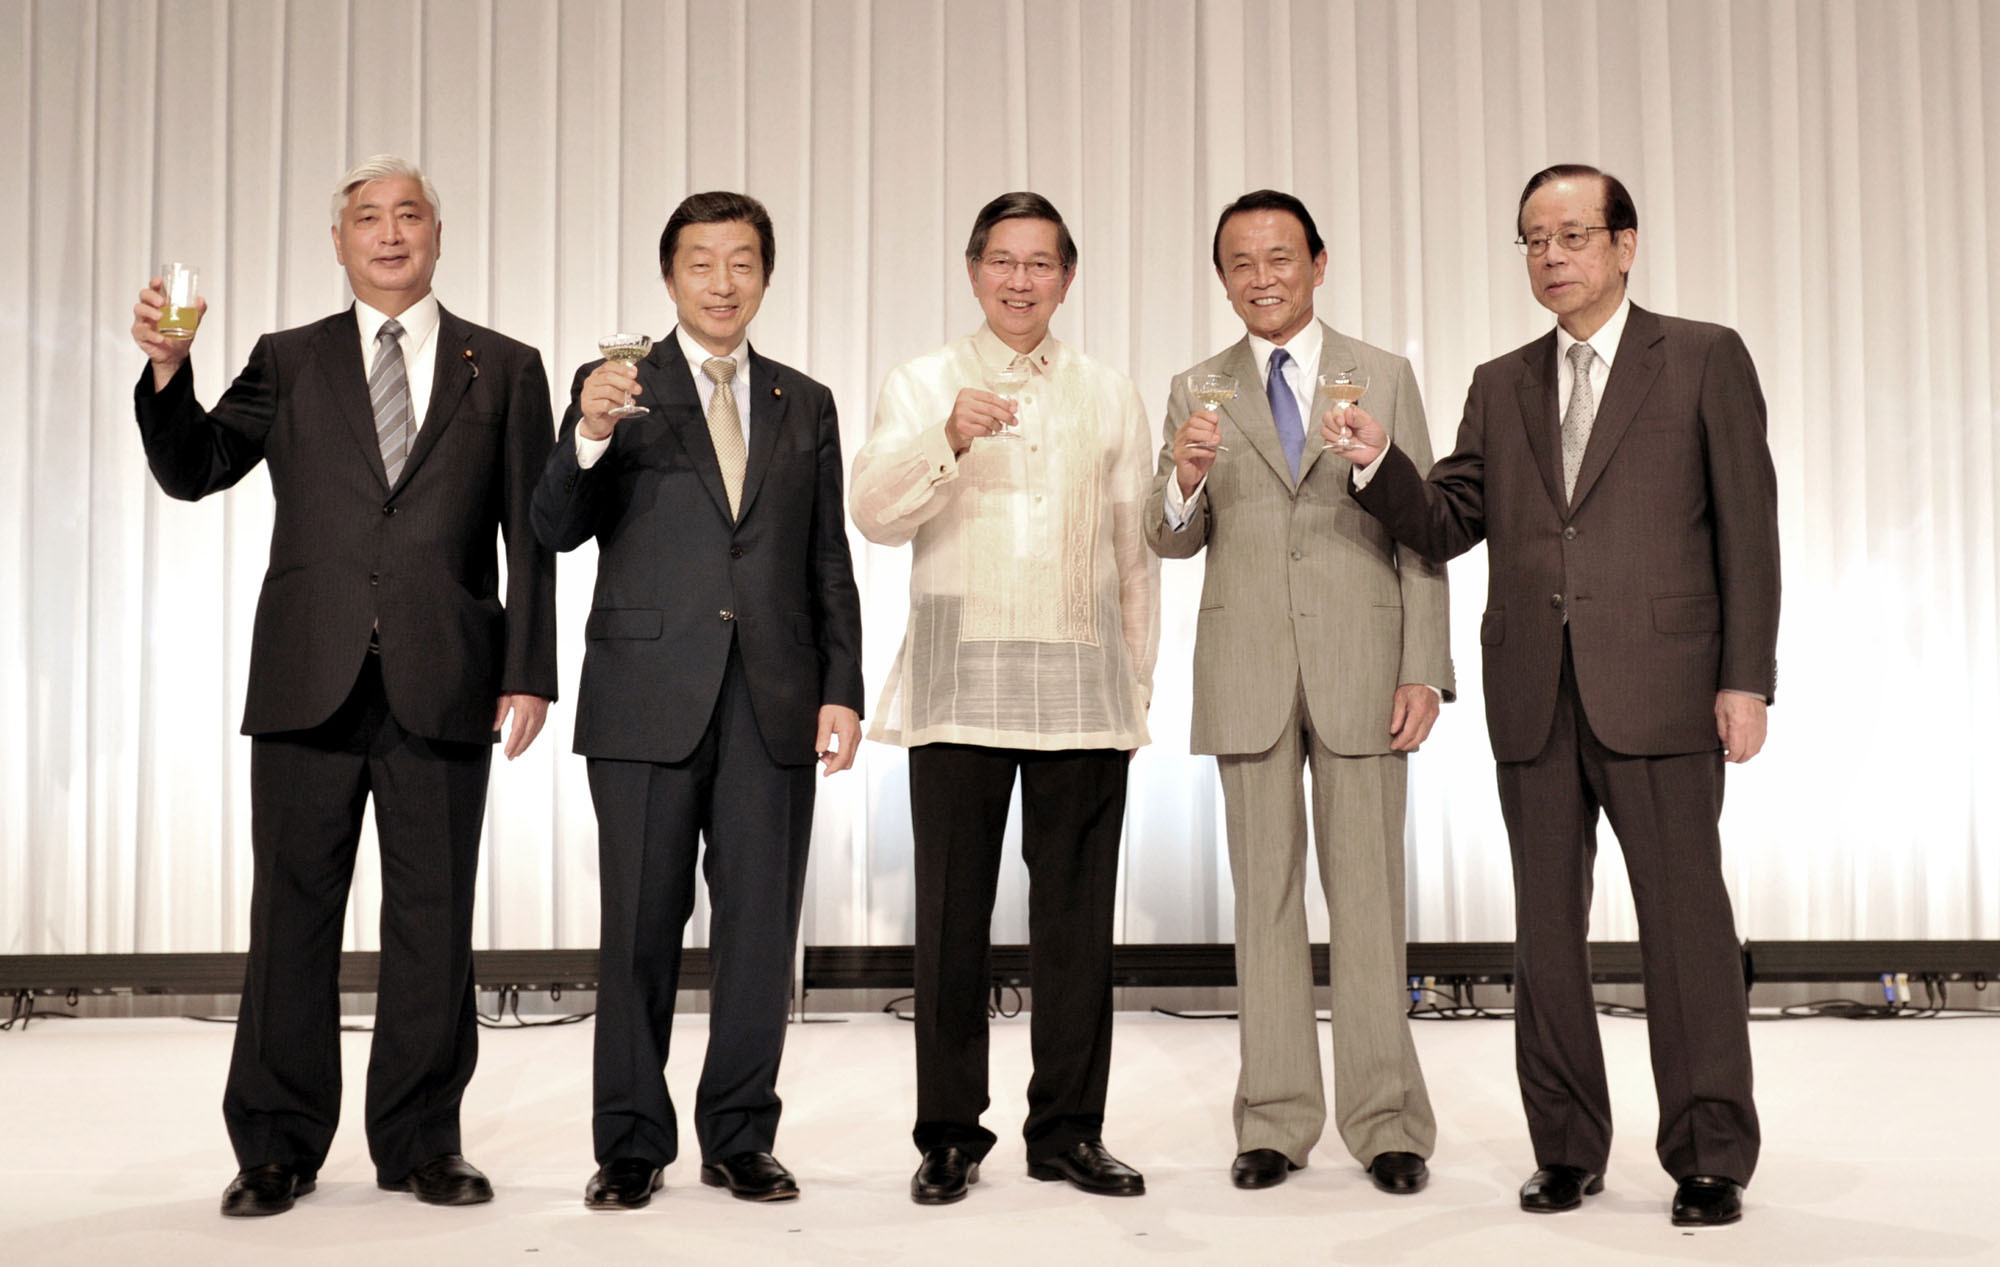 Philippine Ambassador Manuel M. Lopez (center) prepares for a toast with (from left) Defense Minister Gen Nakatani; Chairman of the Japan-Philippines Parliamentarian's Friendship League Kenj Kosaka; Deputy Prime Minister and Finance minister Taro Aso; and former Prime Minister and Honorary Chairman of the Japan-Philippines Parliamentarian's Friendship League Yasuo Fukuda, during a reception celebrating the 118th Anniversary of the Proclamation of Philippine Independence and the 60th Anniversary of the normalization of diplomatic relations between the Philippines and Japan at the Imperial Hotel, Tokyo on June 13. | YOSHIAKI MIURA